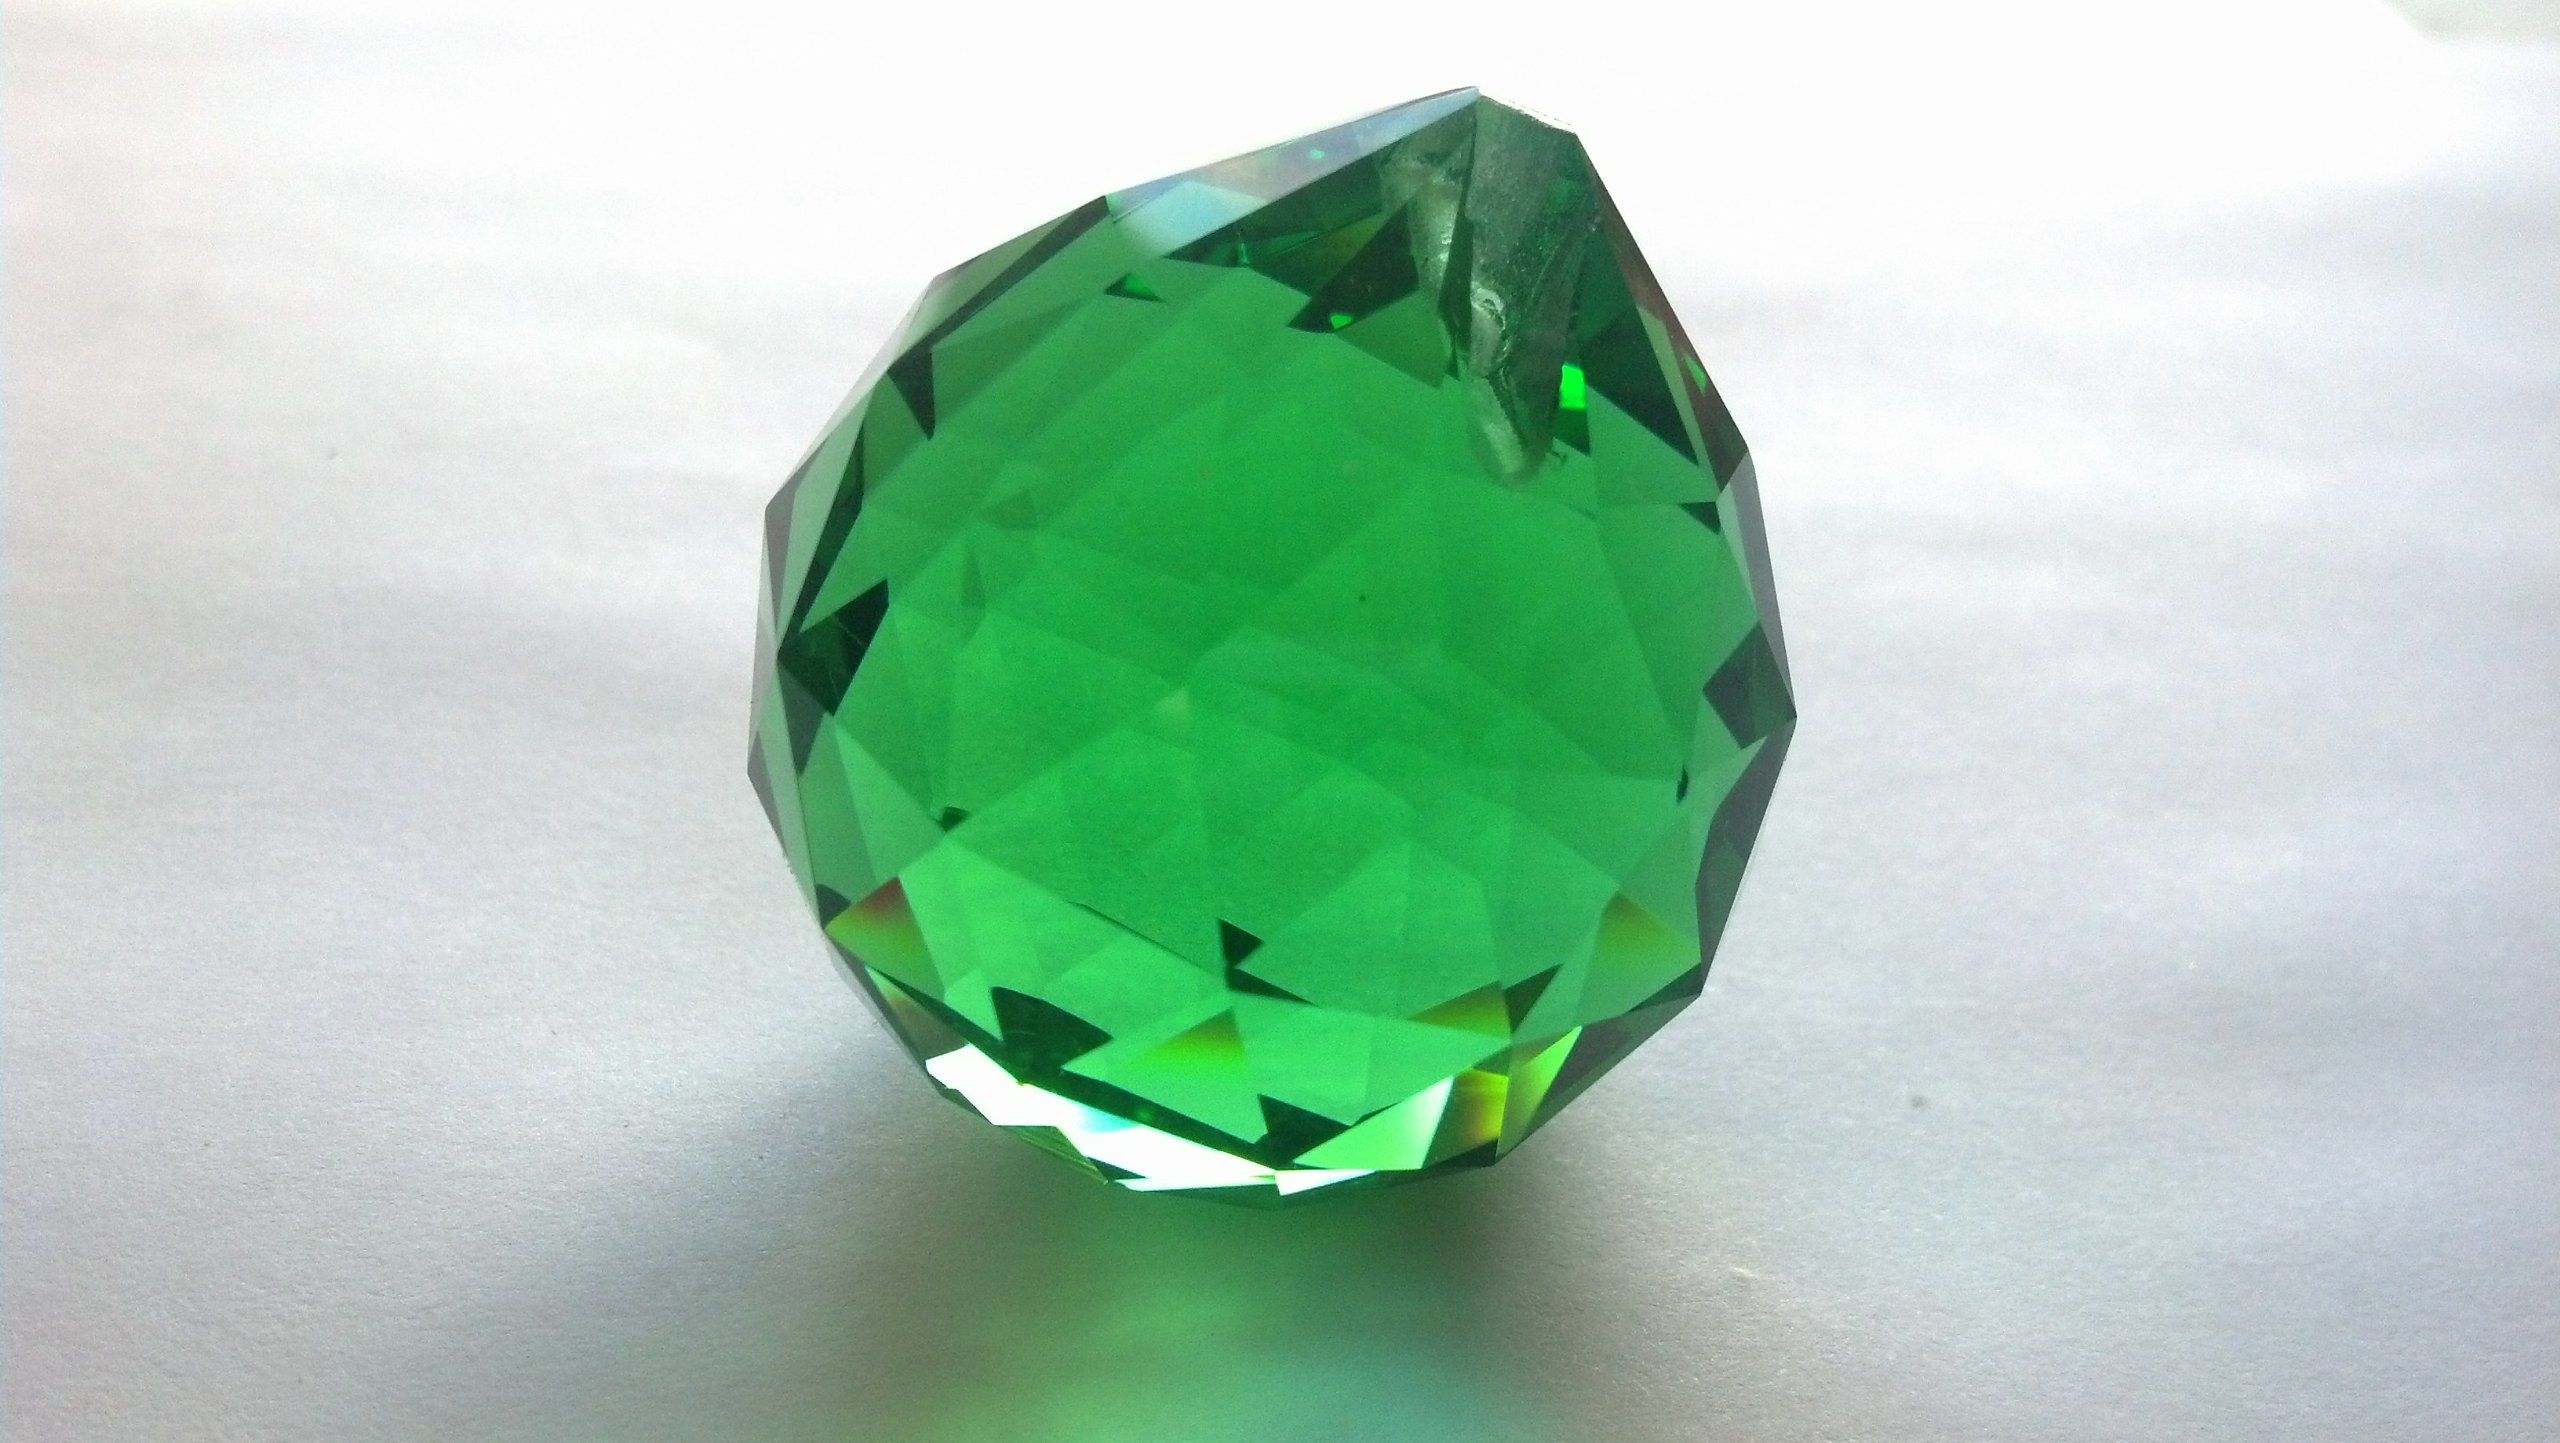 30mm Chandelier Crystal Green Faceted Ball Prism Feng Shui